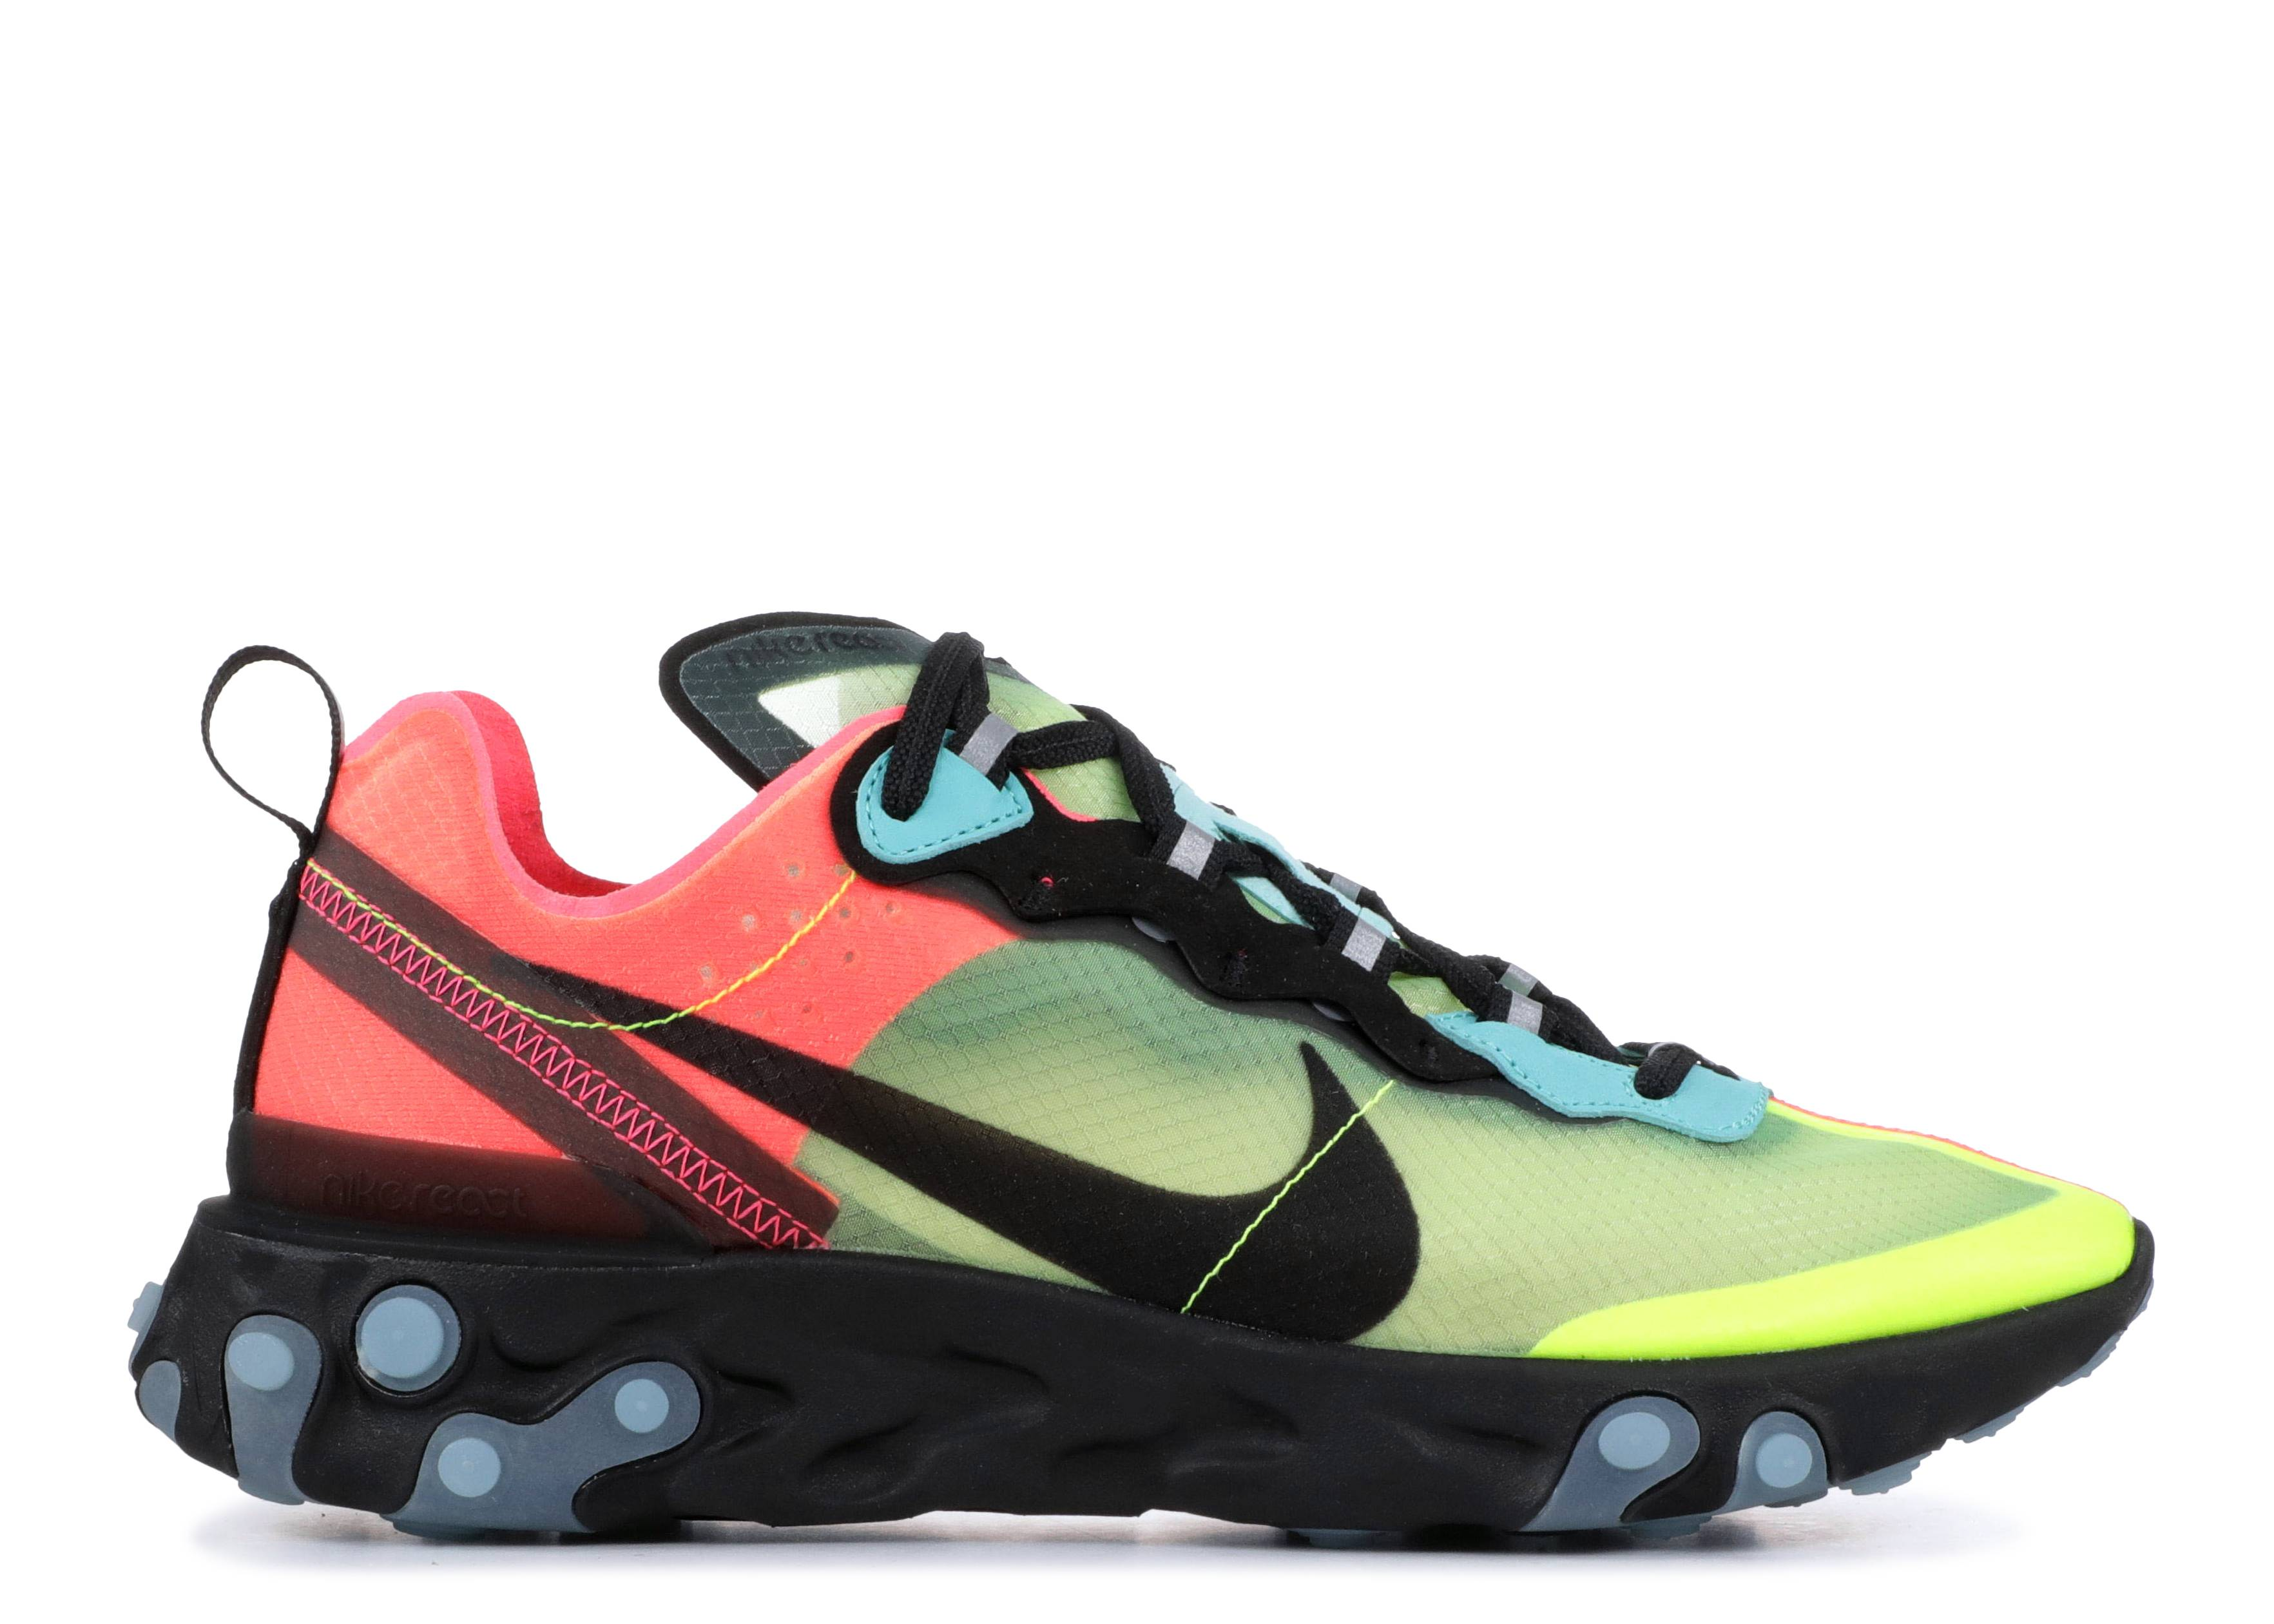 c899c2a3f493 Nike Other - Nike